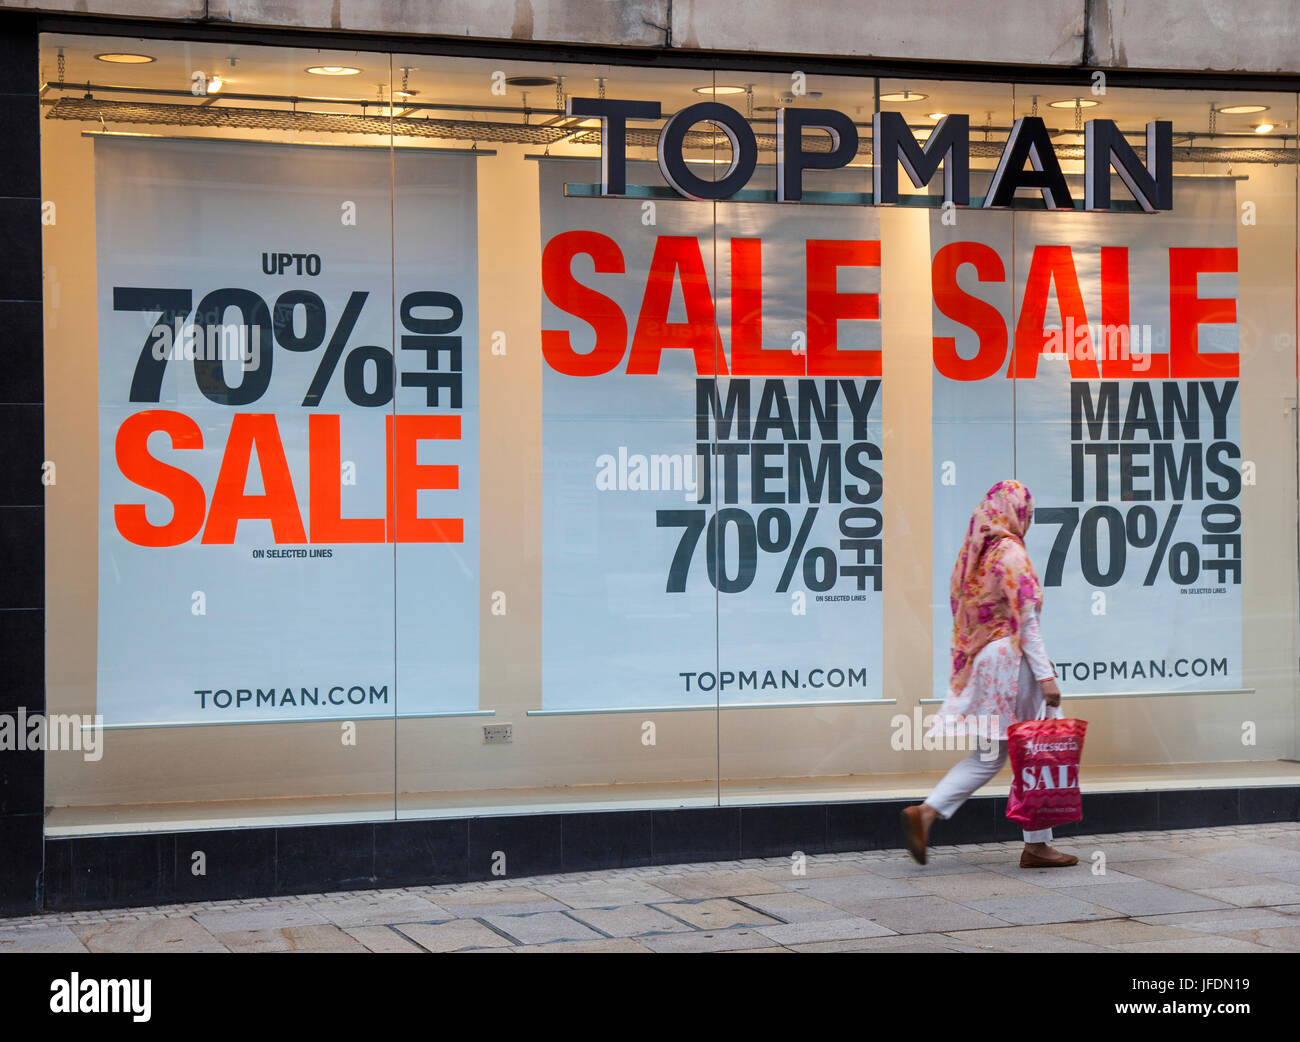 Topman Shop front with Summer Sales Posters, in Fishergate, Preston, UK - Stock Image